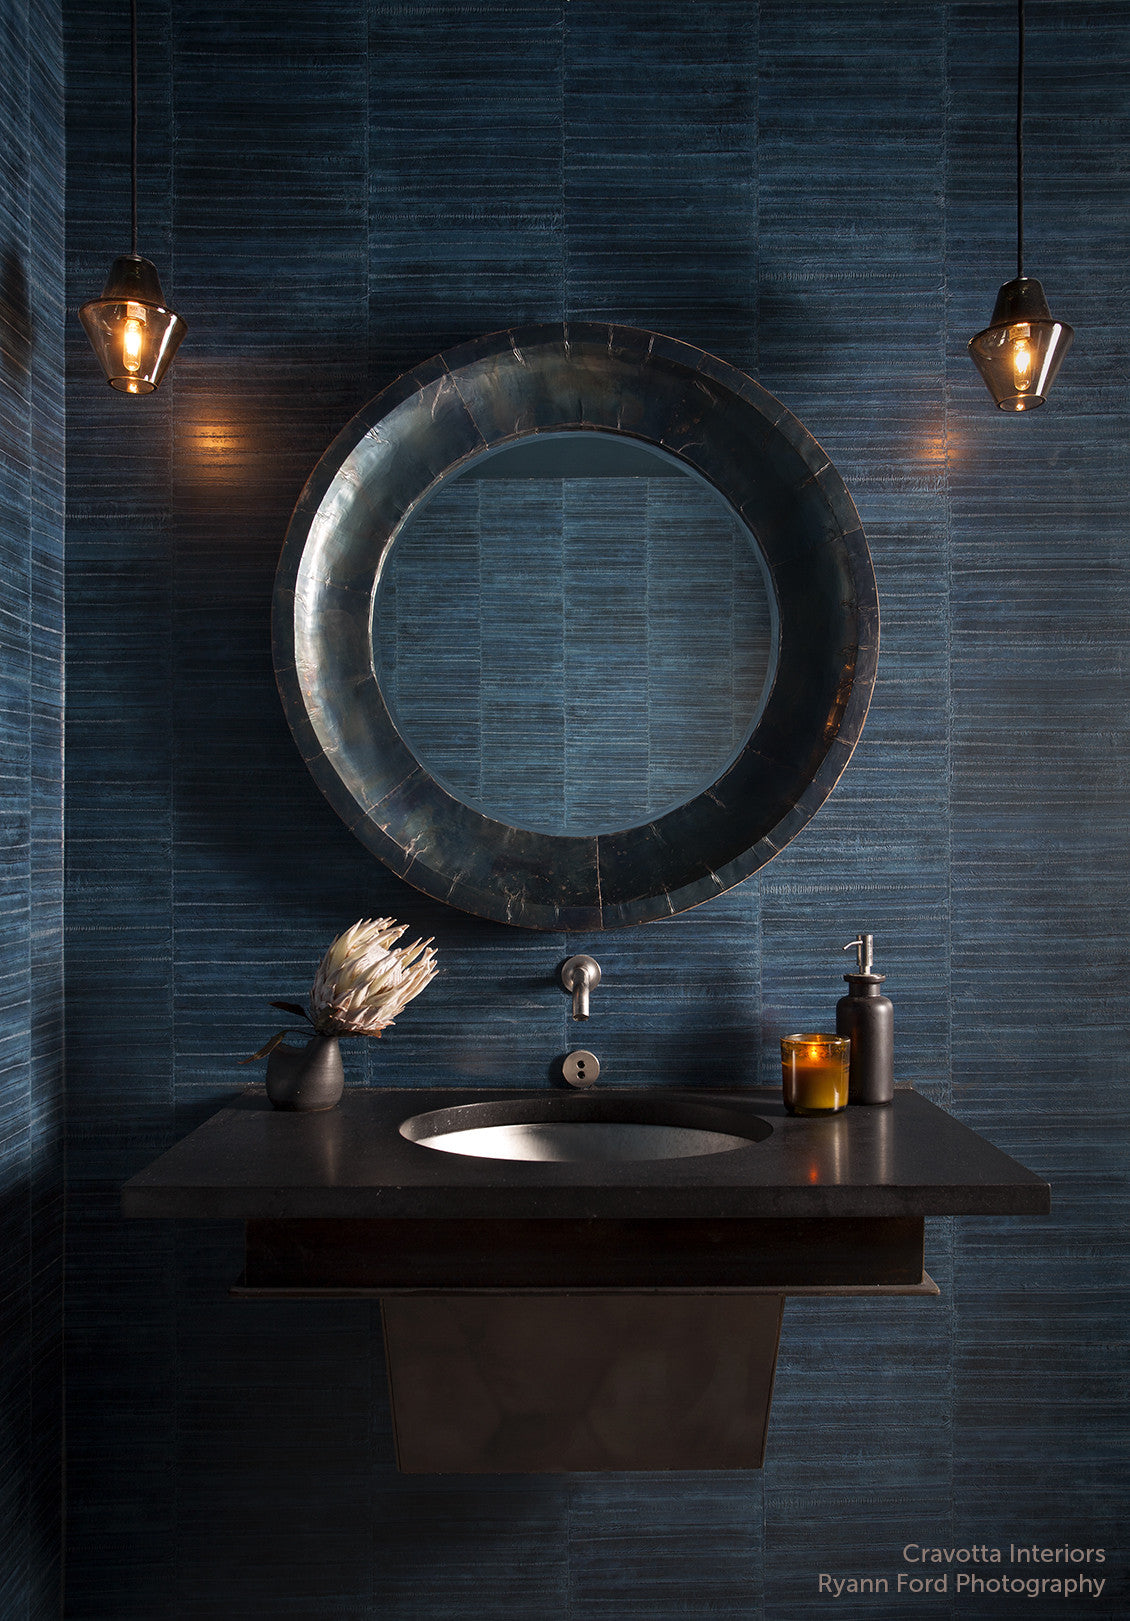 Cumberland pendant lights in Smoke Grey handblown glass in a bathroom designed by Cravotta and photographed by Ryann Ford.